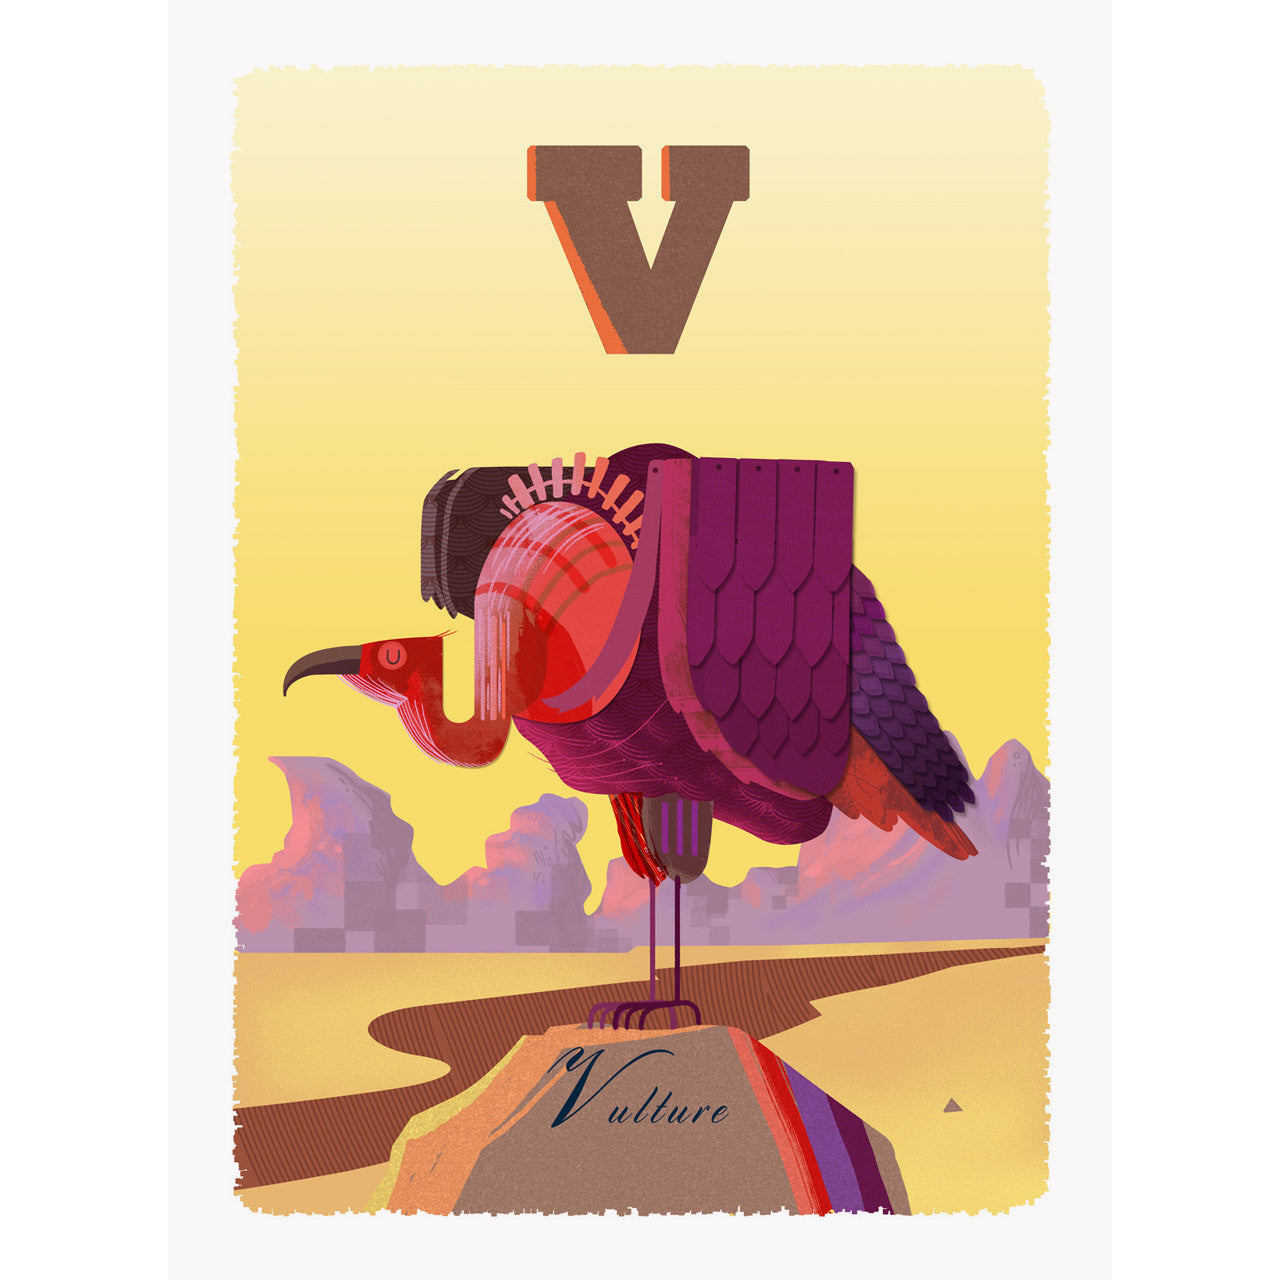 Vulture print by Graham Carter